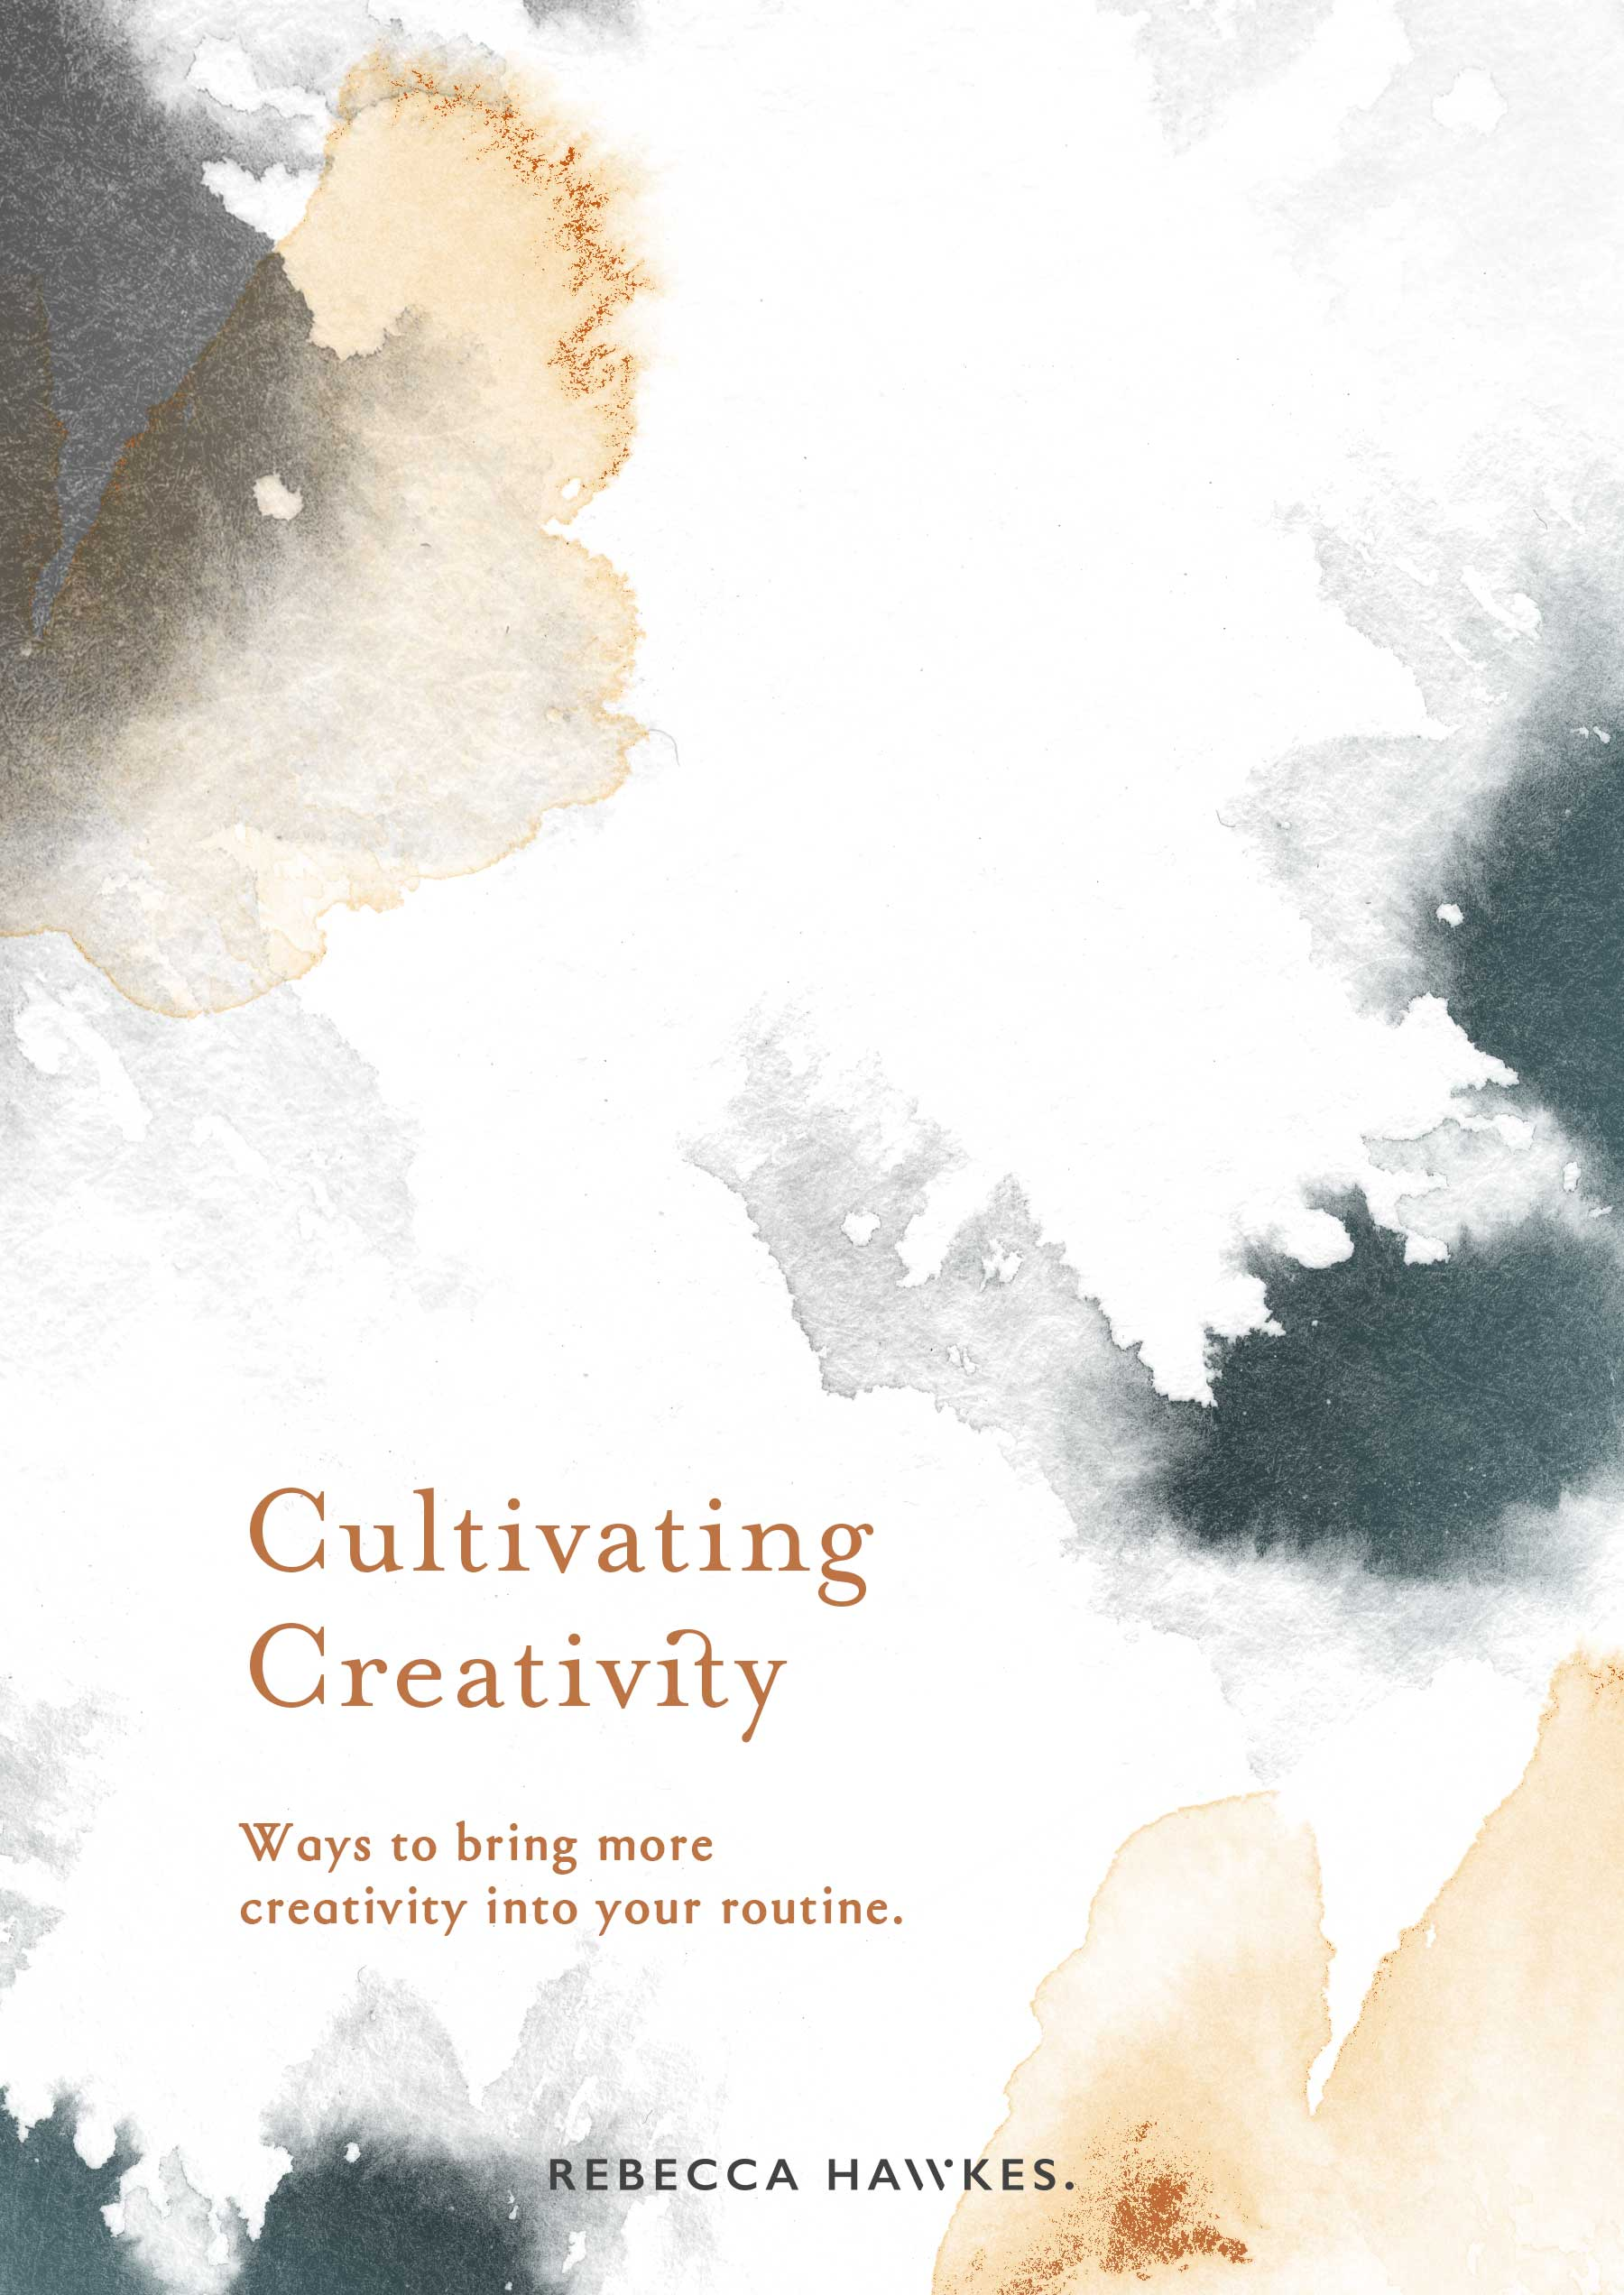 Cultivating Creativity | Ways to bring more creativity into your routine. by Rebecca Hawkes